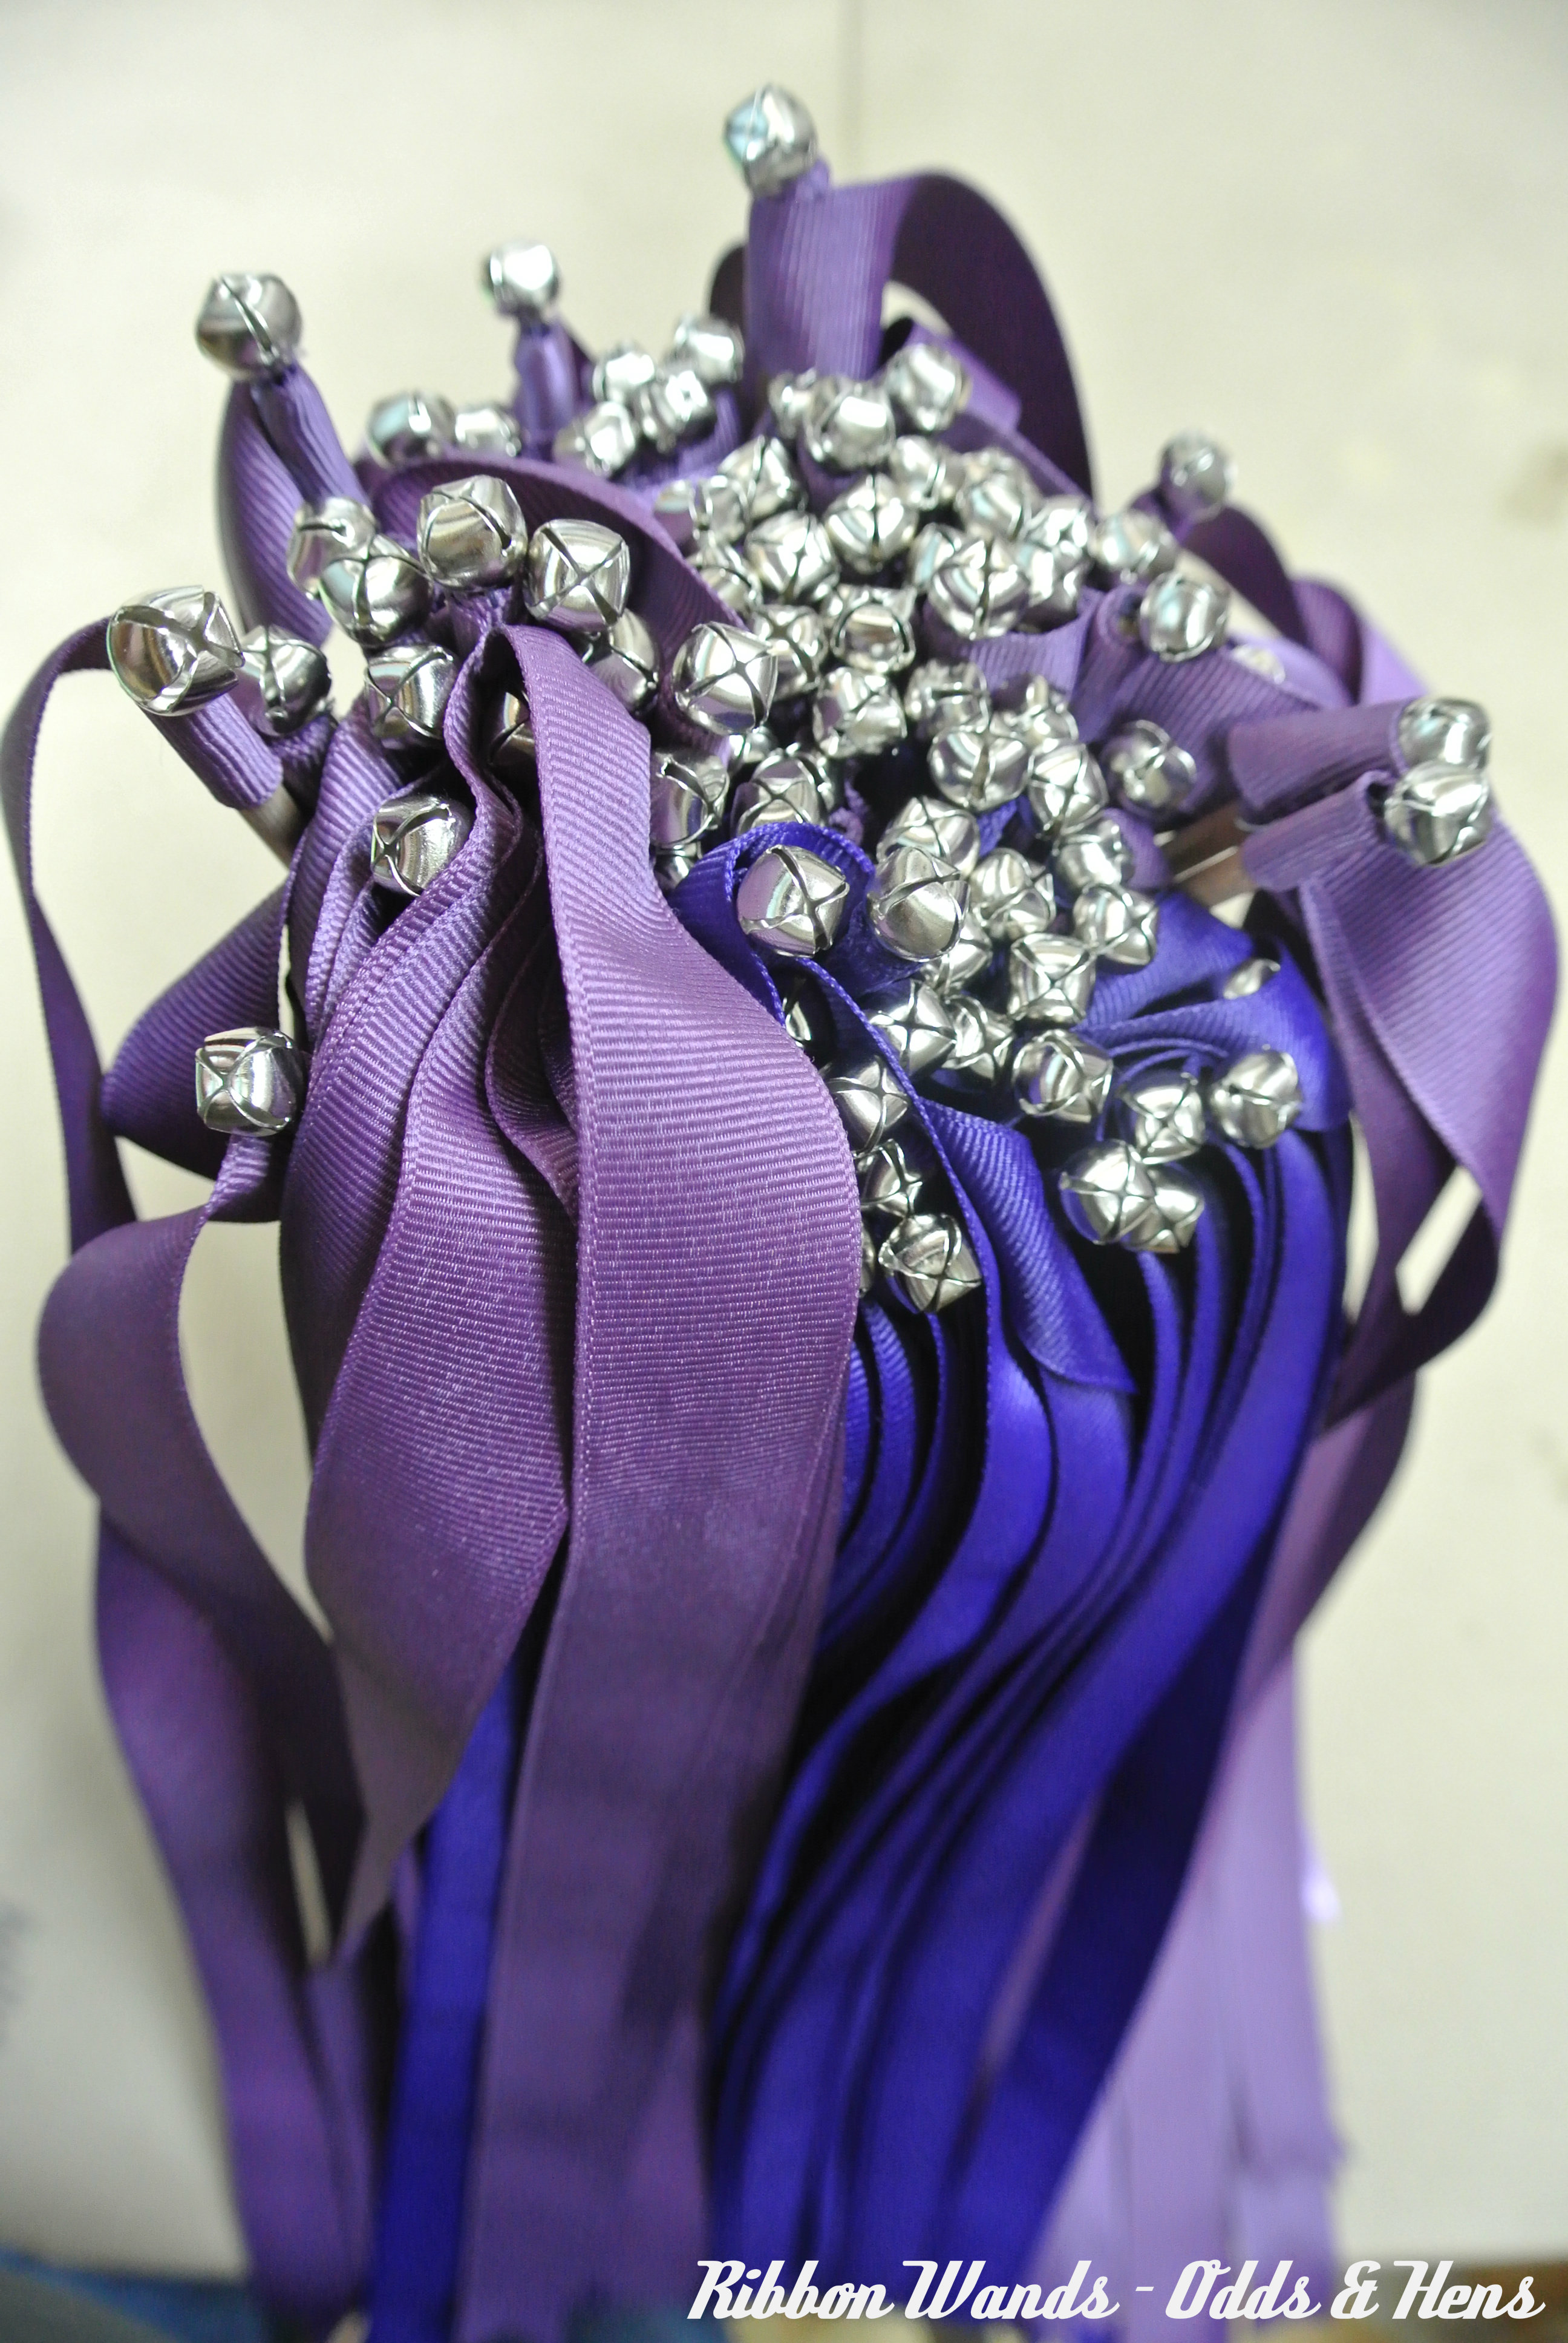 Ribbon wands easy diy for any party or wedding odds hens supply list and expenses everything can be found at your local craft store michaels joann hobby lobby or well stocked craft room solutioingenieria Gallery